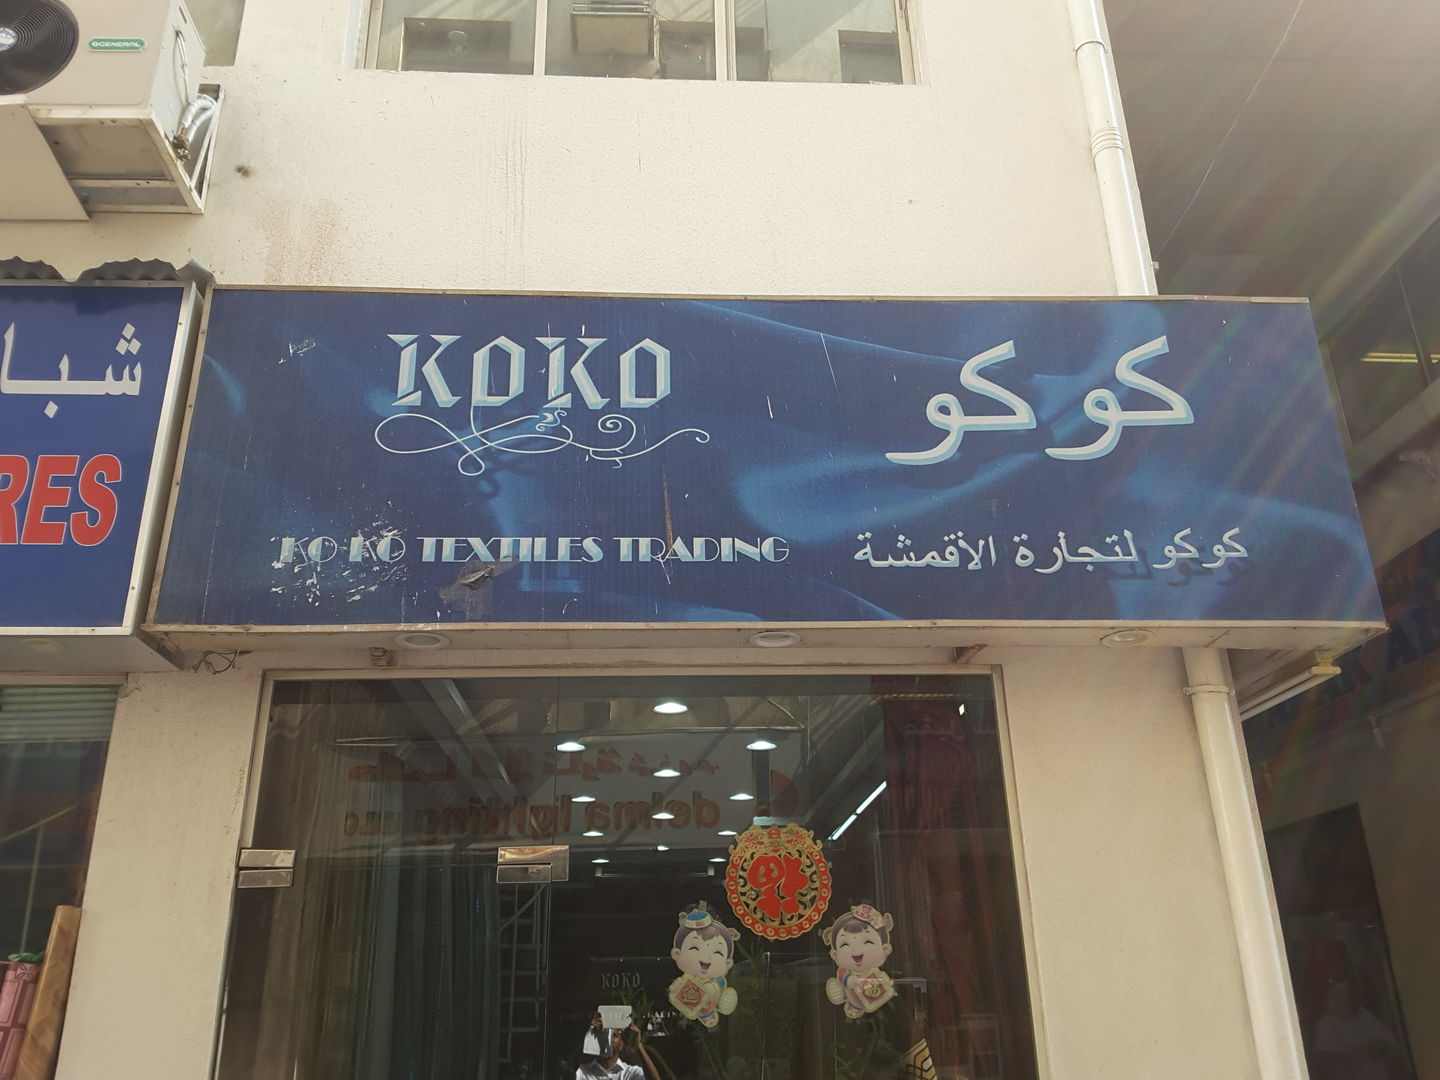 HiDubai-business-koko-textiles-trading-co-b2b-services-distributors-wholesalers-al-murar-dubai-2